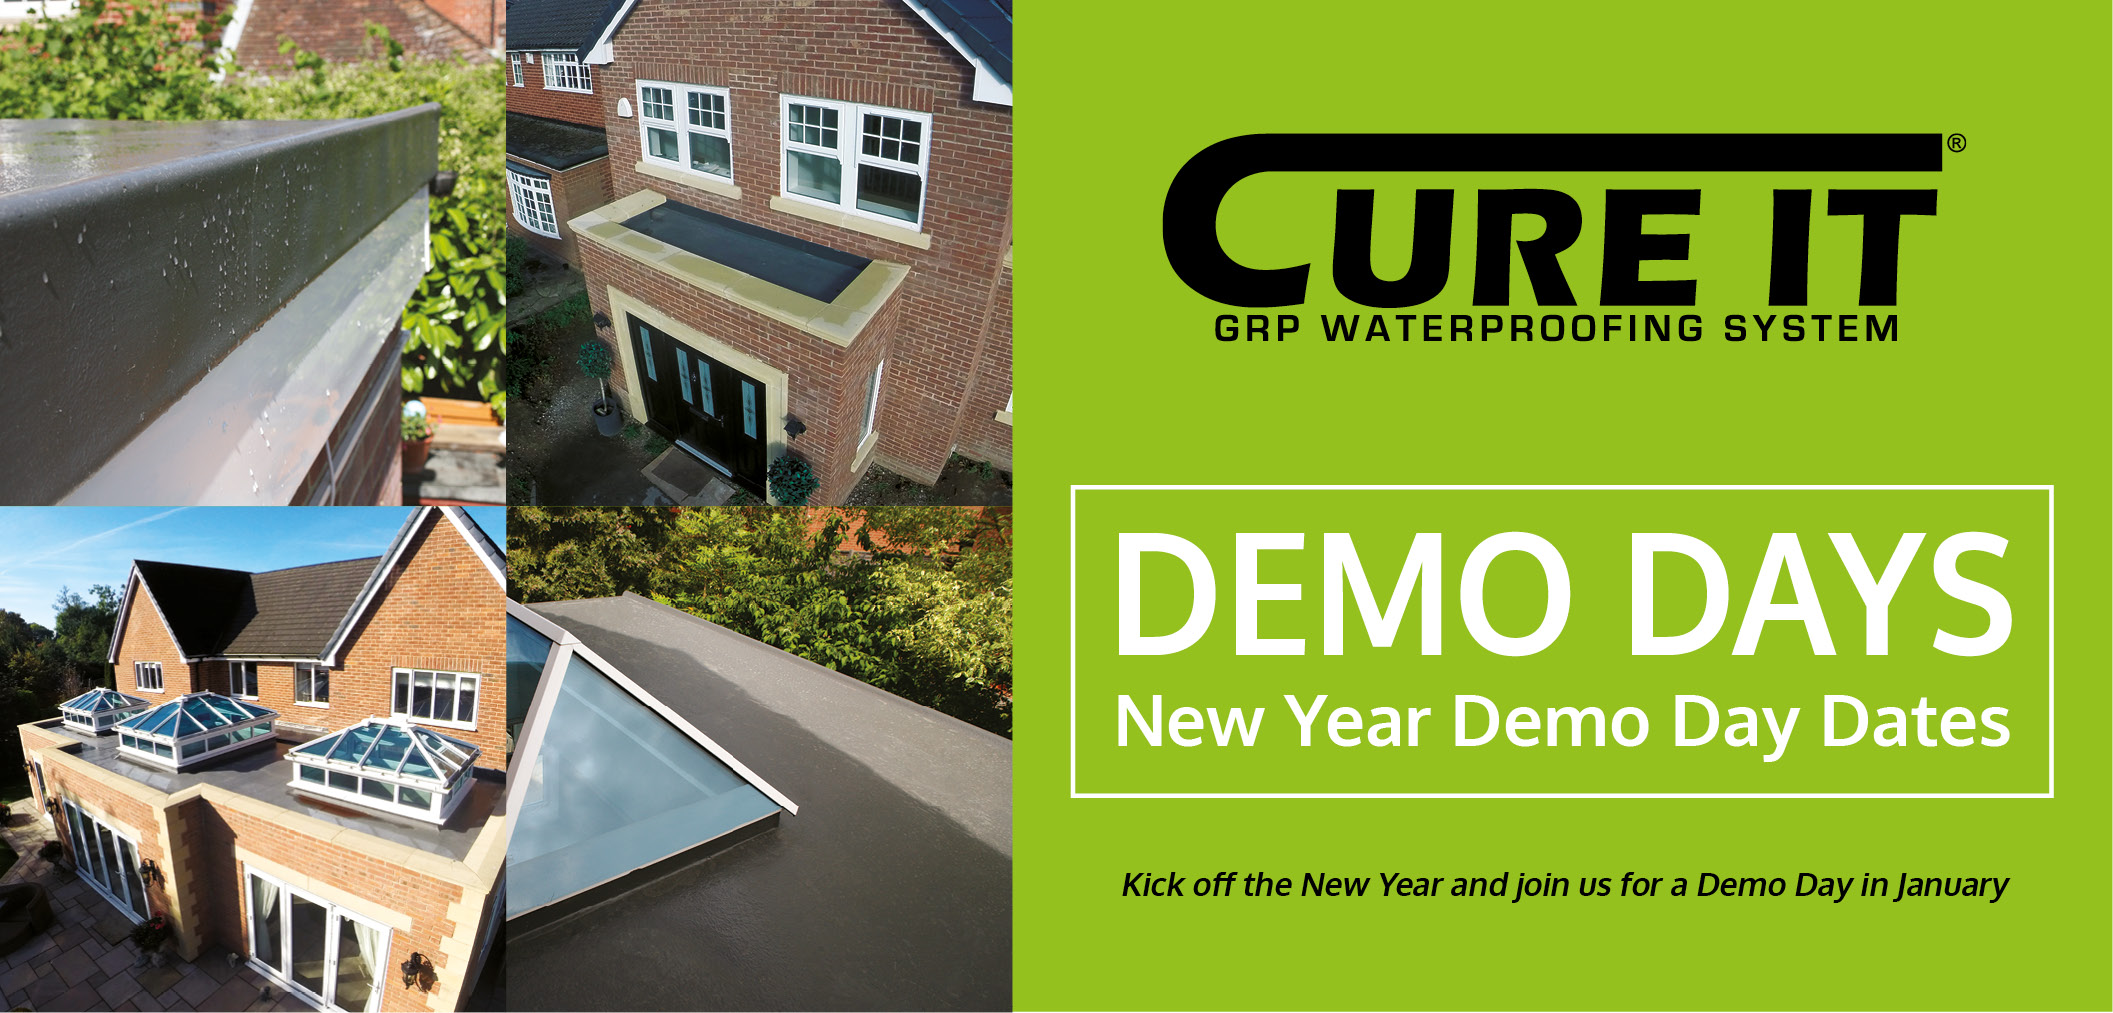 Cure It Demo Day - How to lay a Cure It GRP flat roof